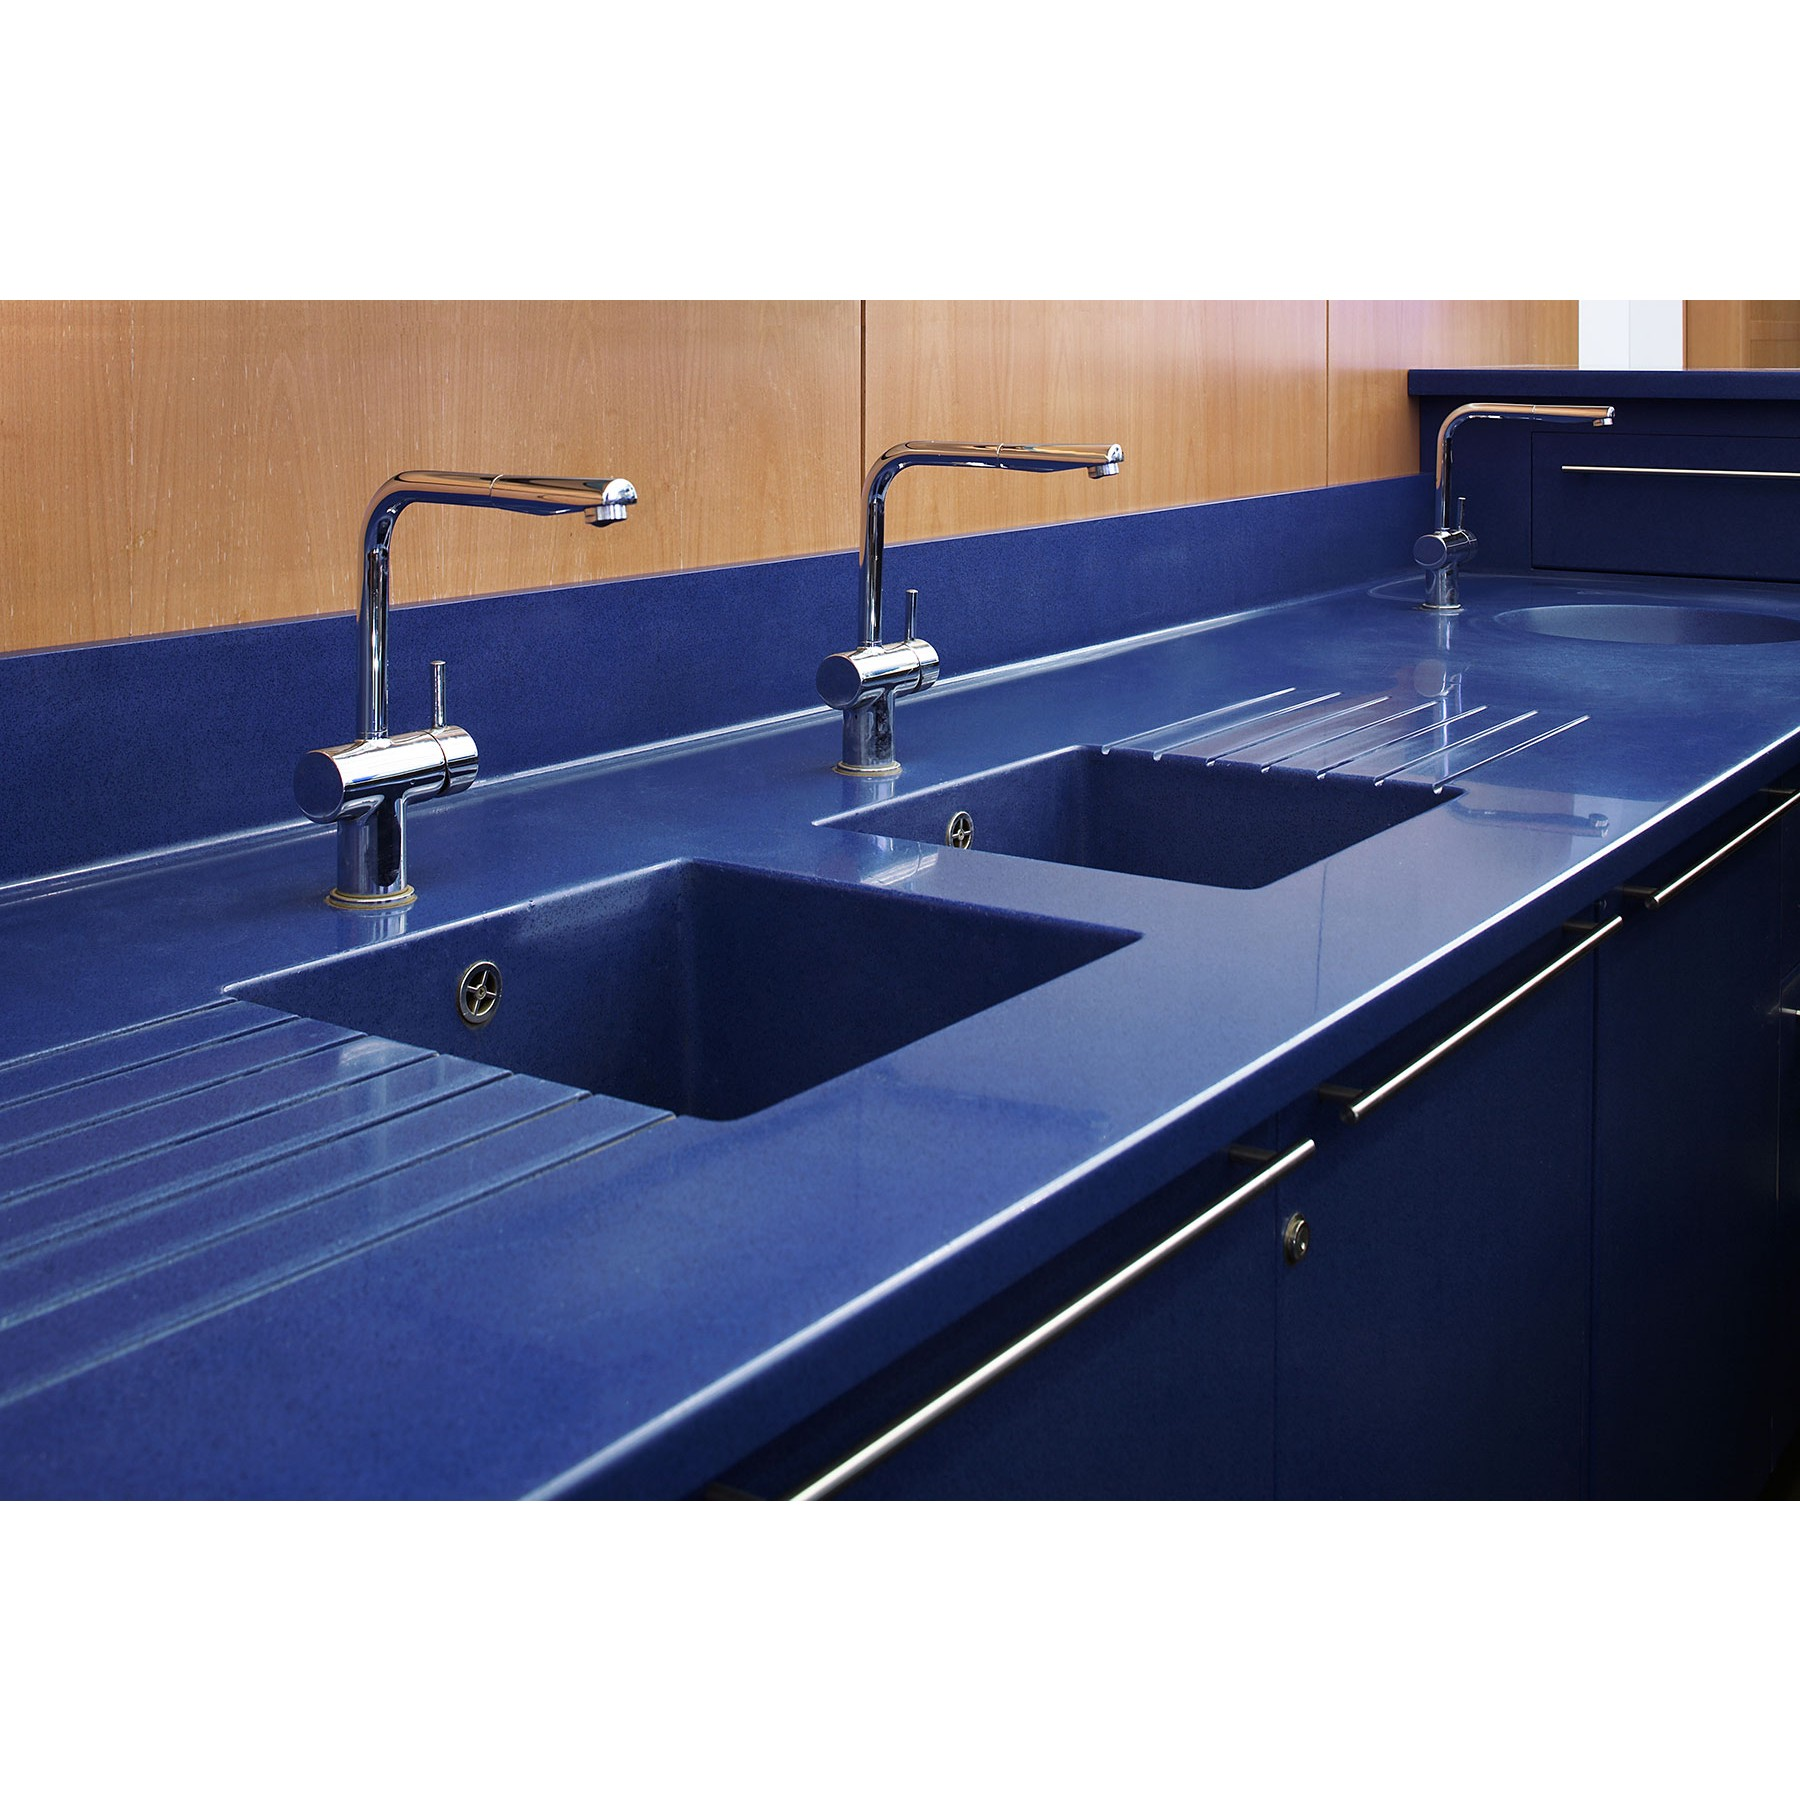 Durat 090 Recycled Polyester Countertop